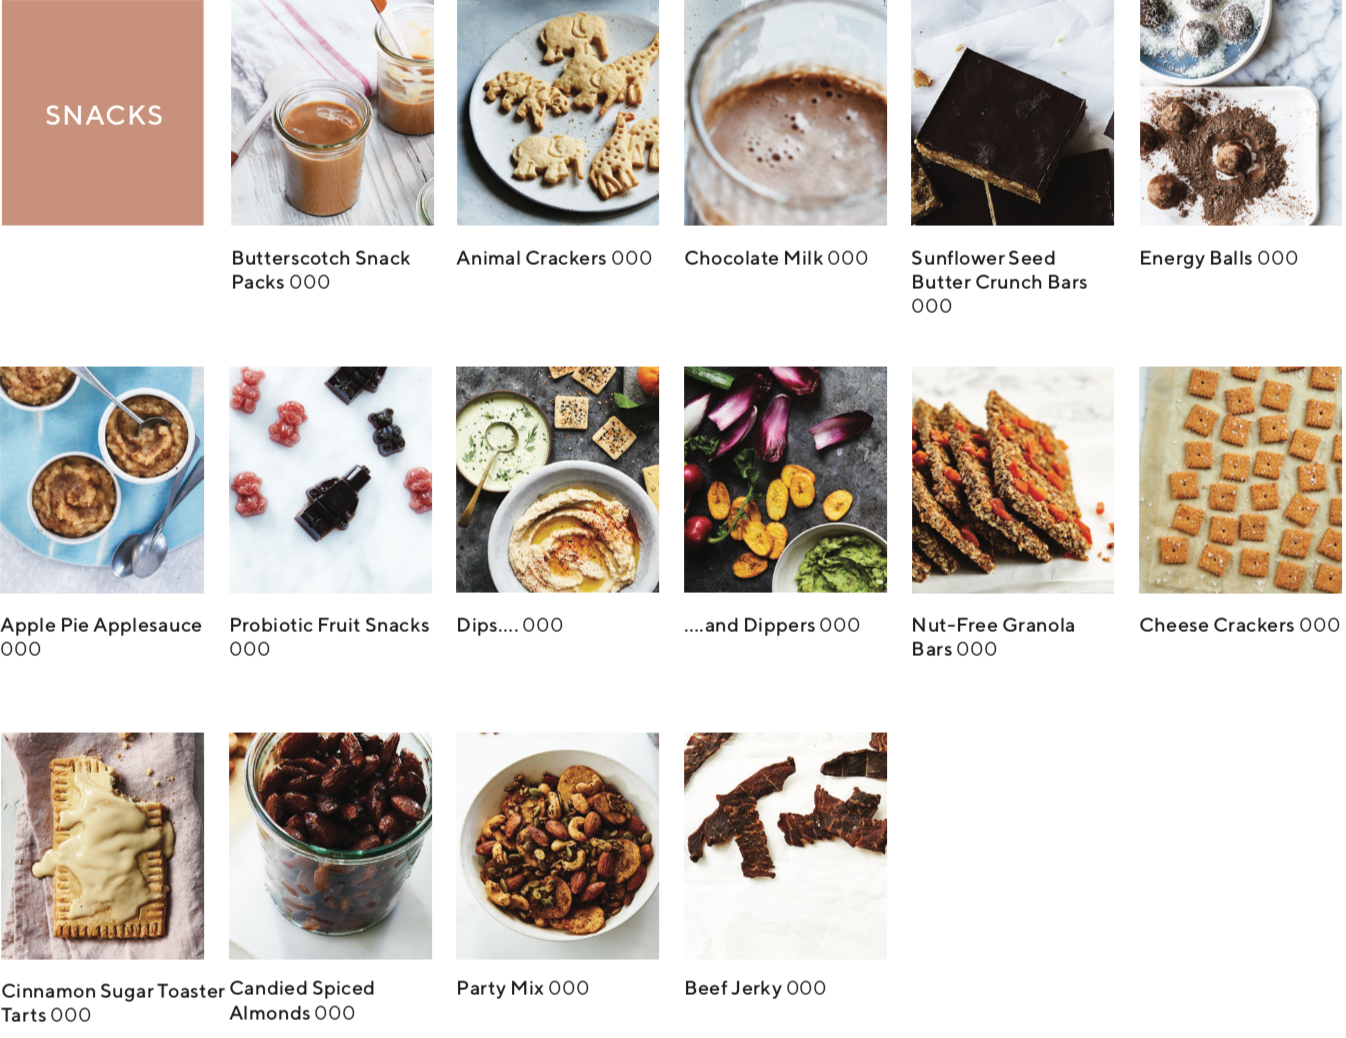 recipe index showing images of recipes that are snacks